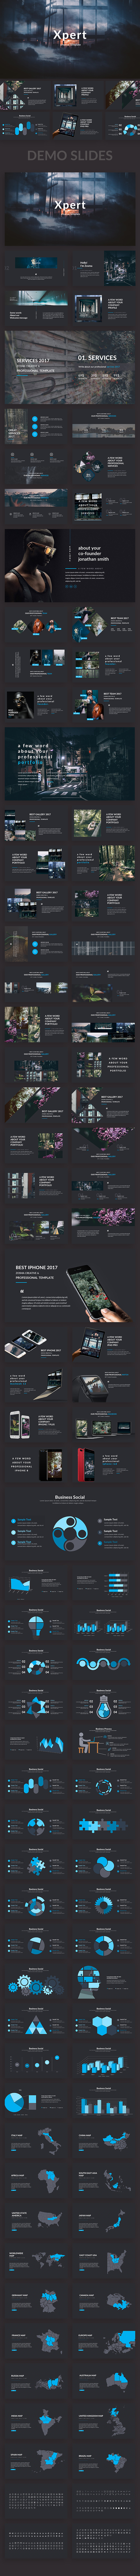 Xpert Creative Powerpoint Template - Creative PowerPoint Templates